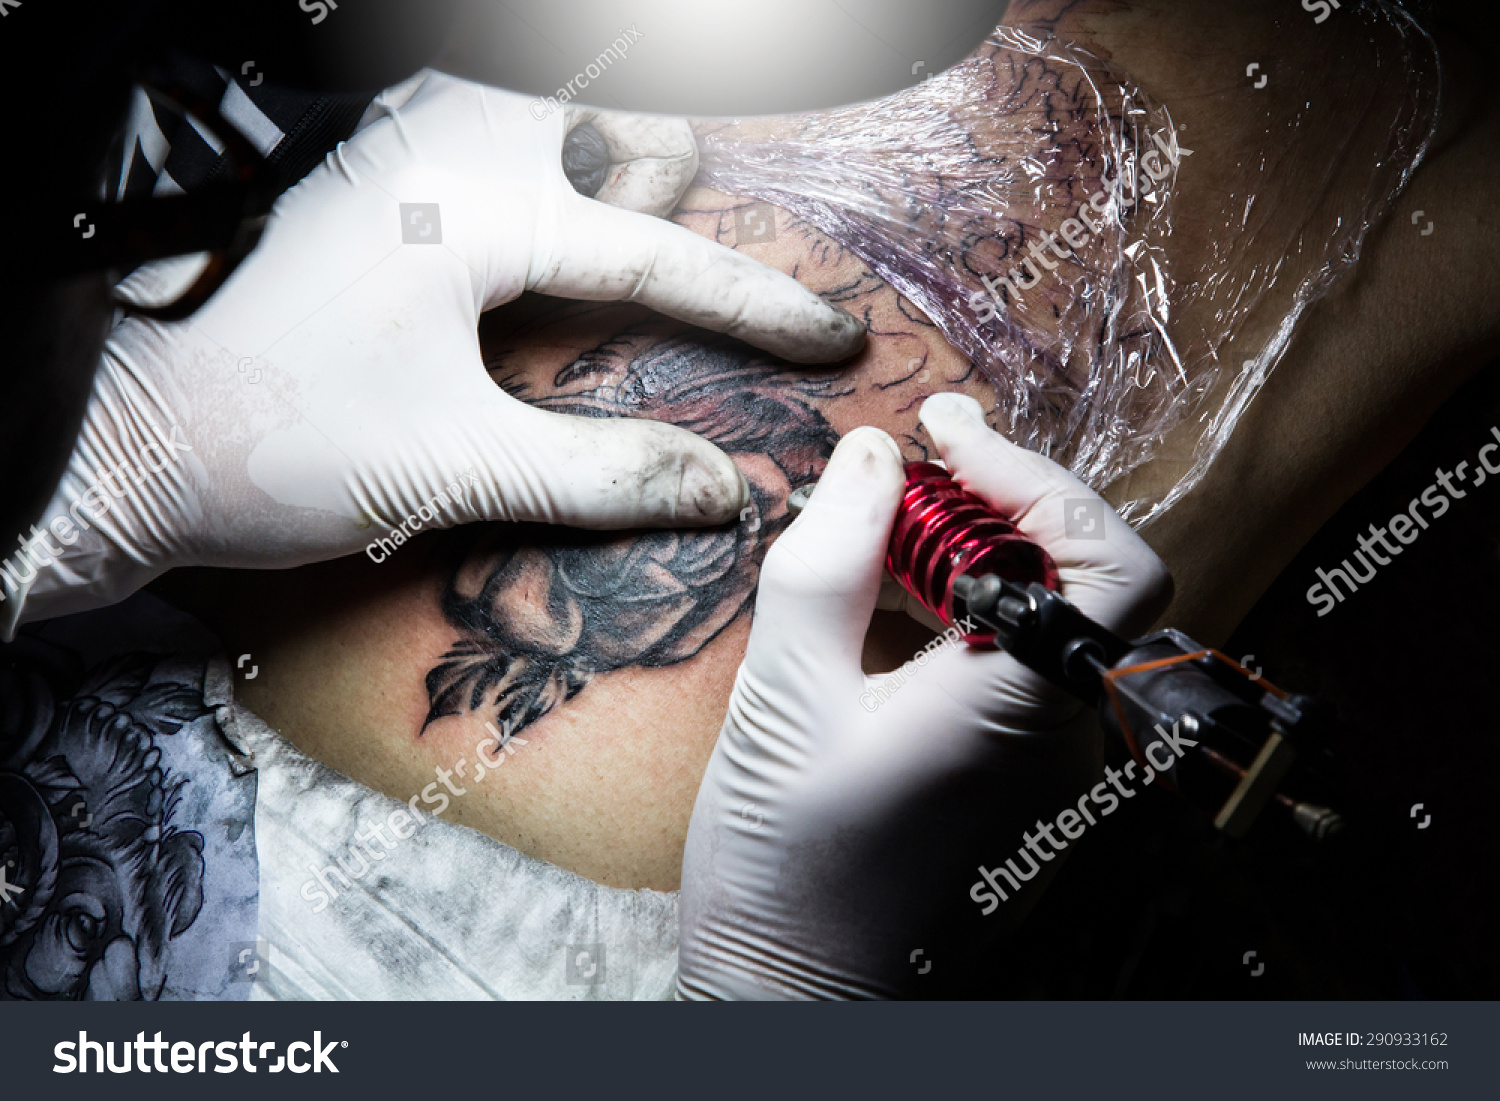 Tattooer showing process making tattoo tattoo stock photo for Process of tattooing